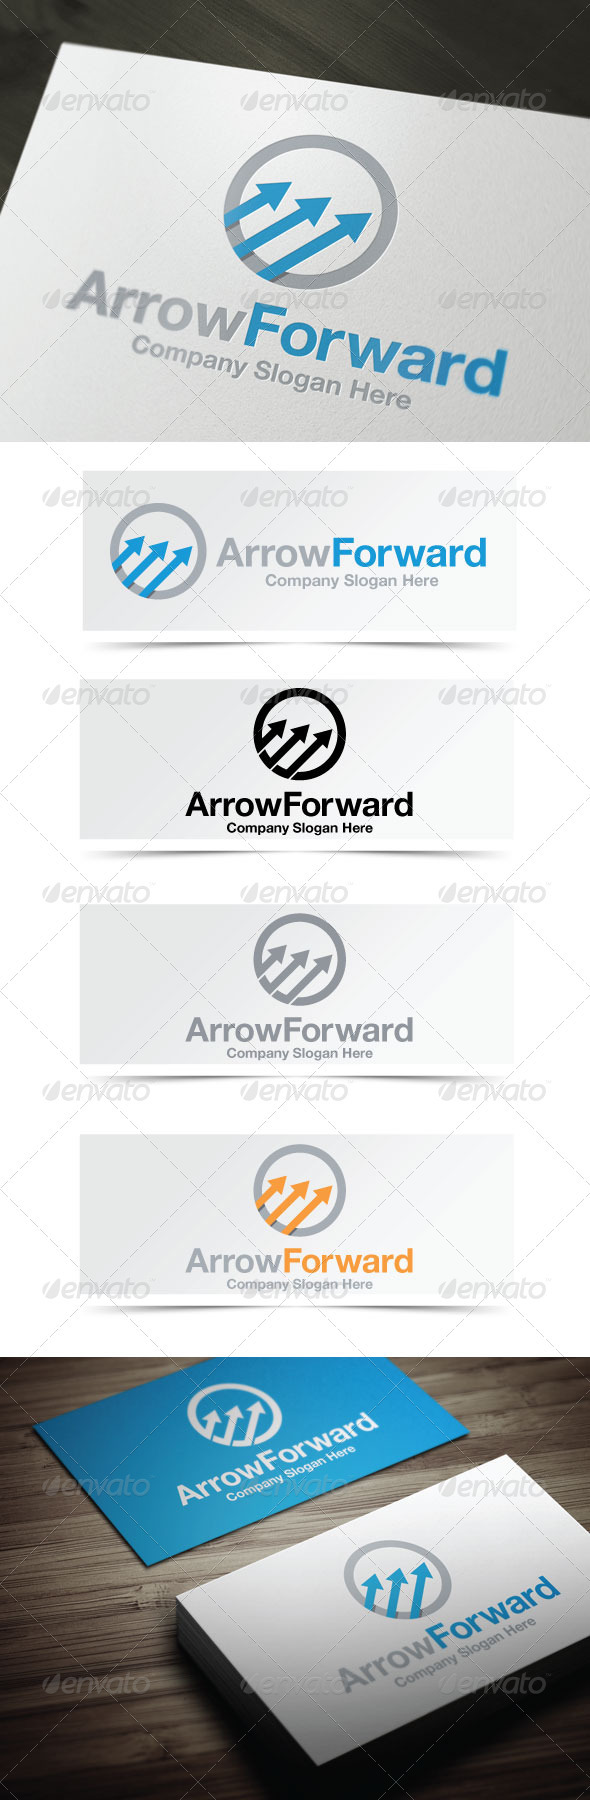 Arrow Forward - Symbols Logo Templates